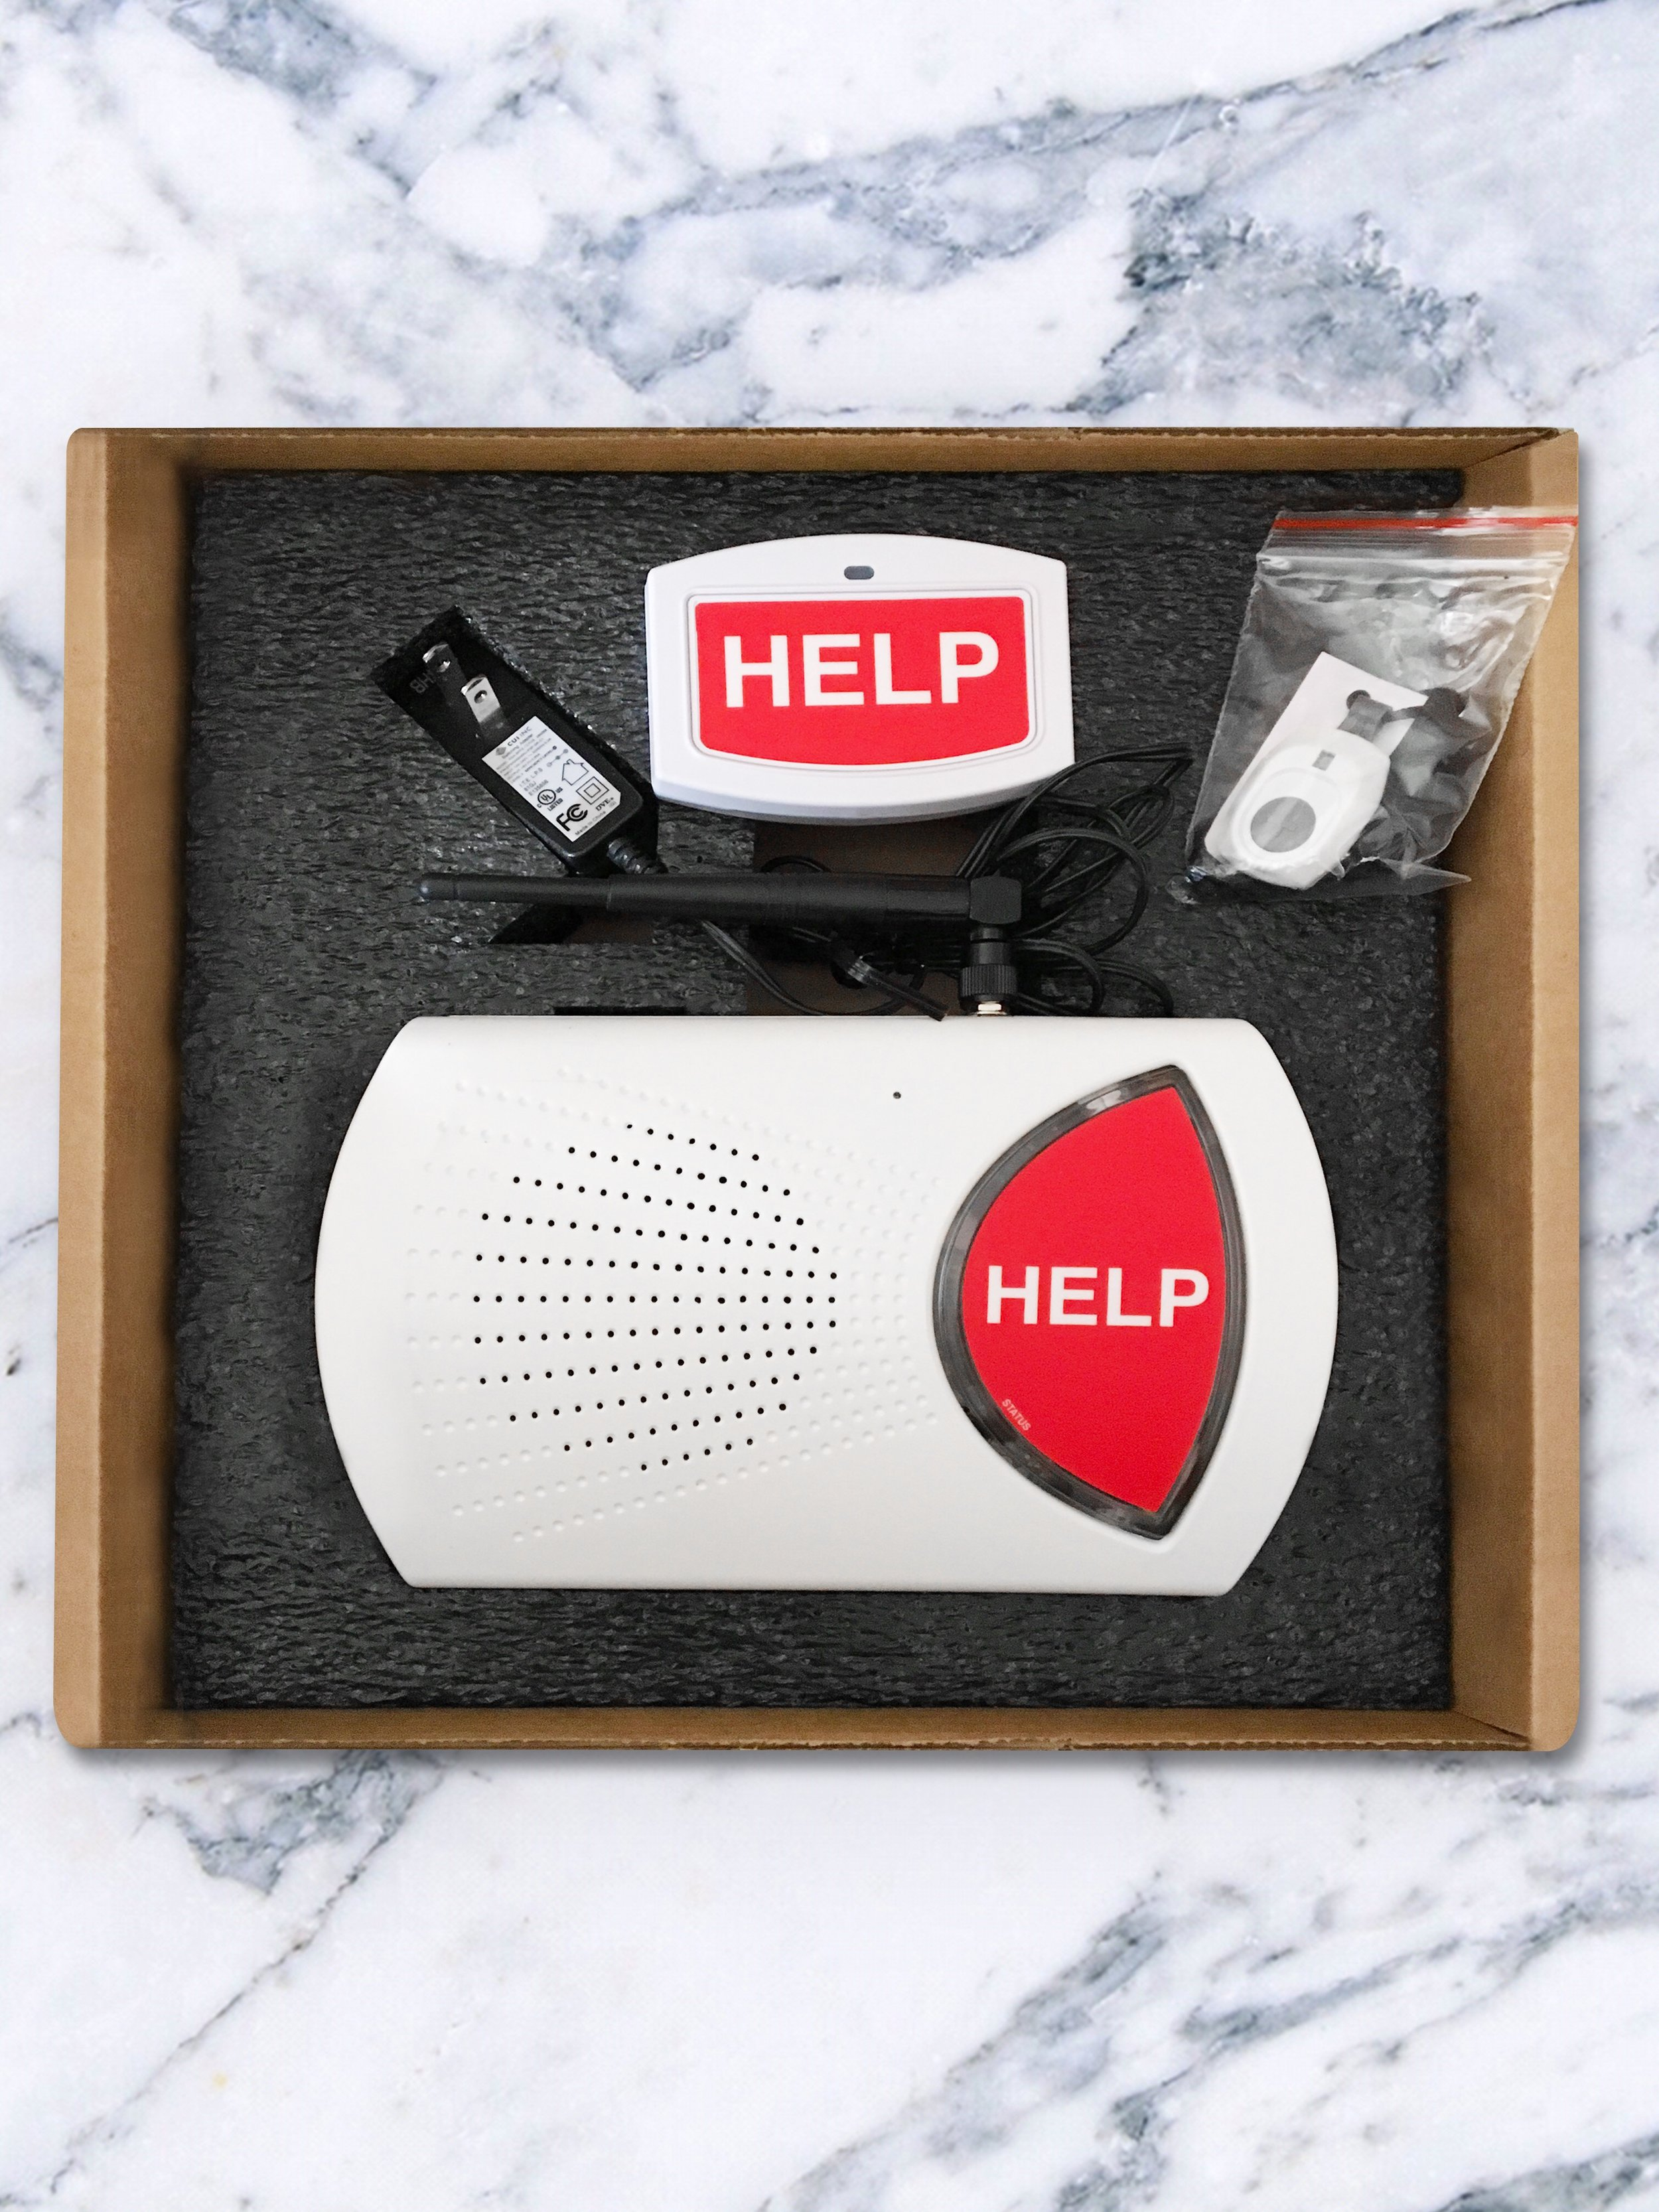 Bay Alarm Medical Kit was easy to install!